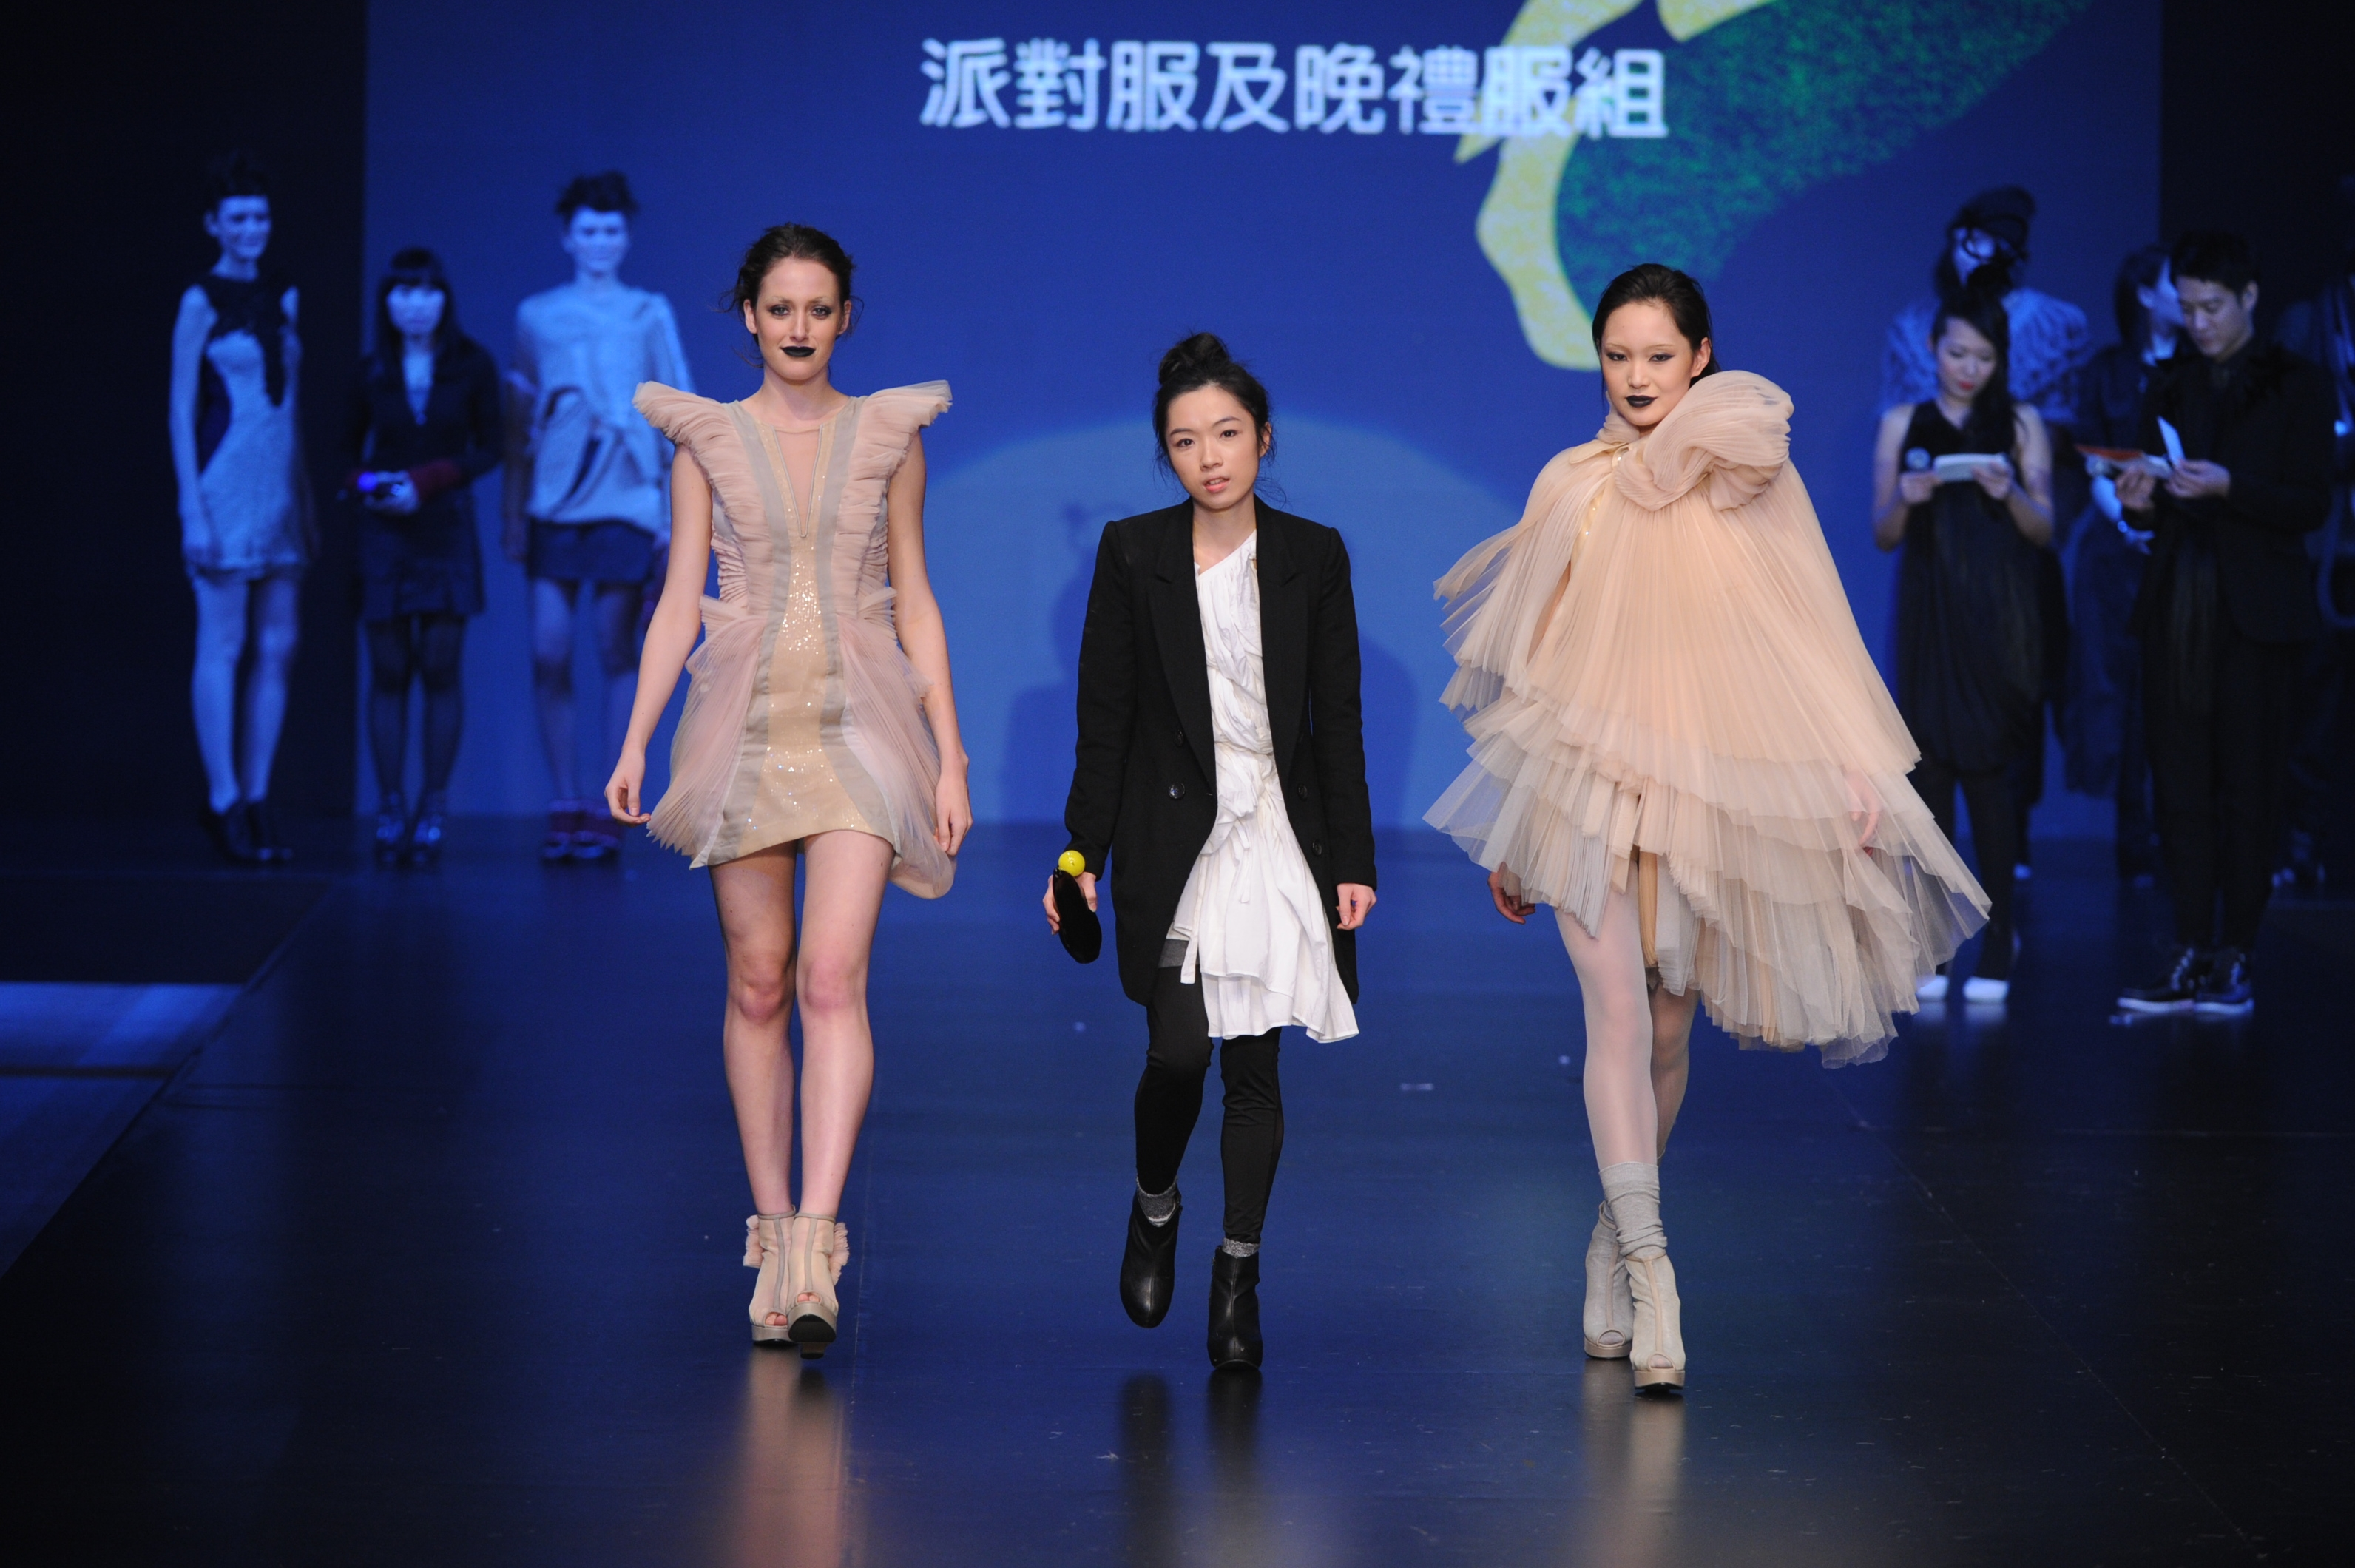 Hktdc Com Hong Kong Young Fashion Designers Contest Winners Announced Br Font Size 2 I Fashion Week And World Boutique Continue Through Thursday At Hkcec I Font Hktdc